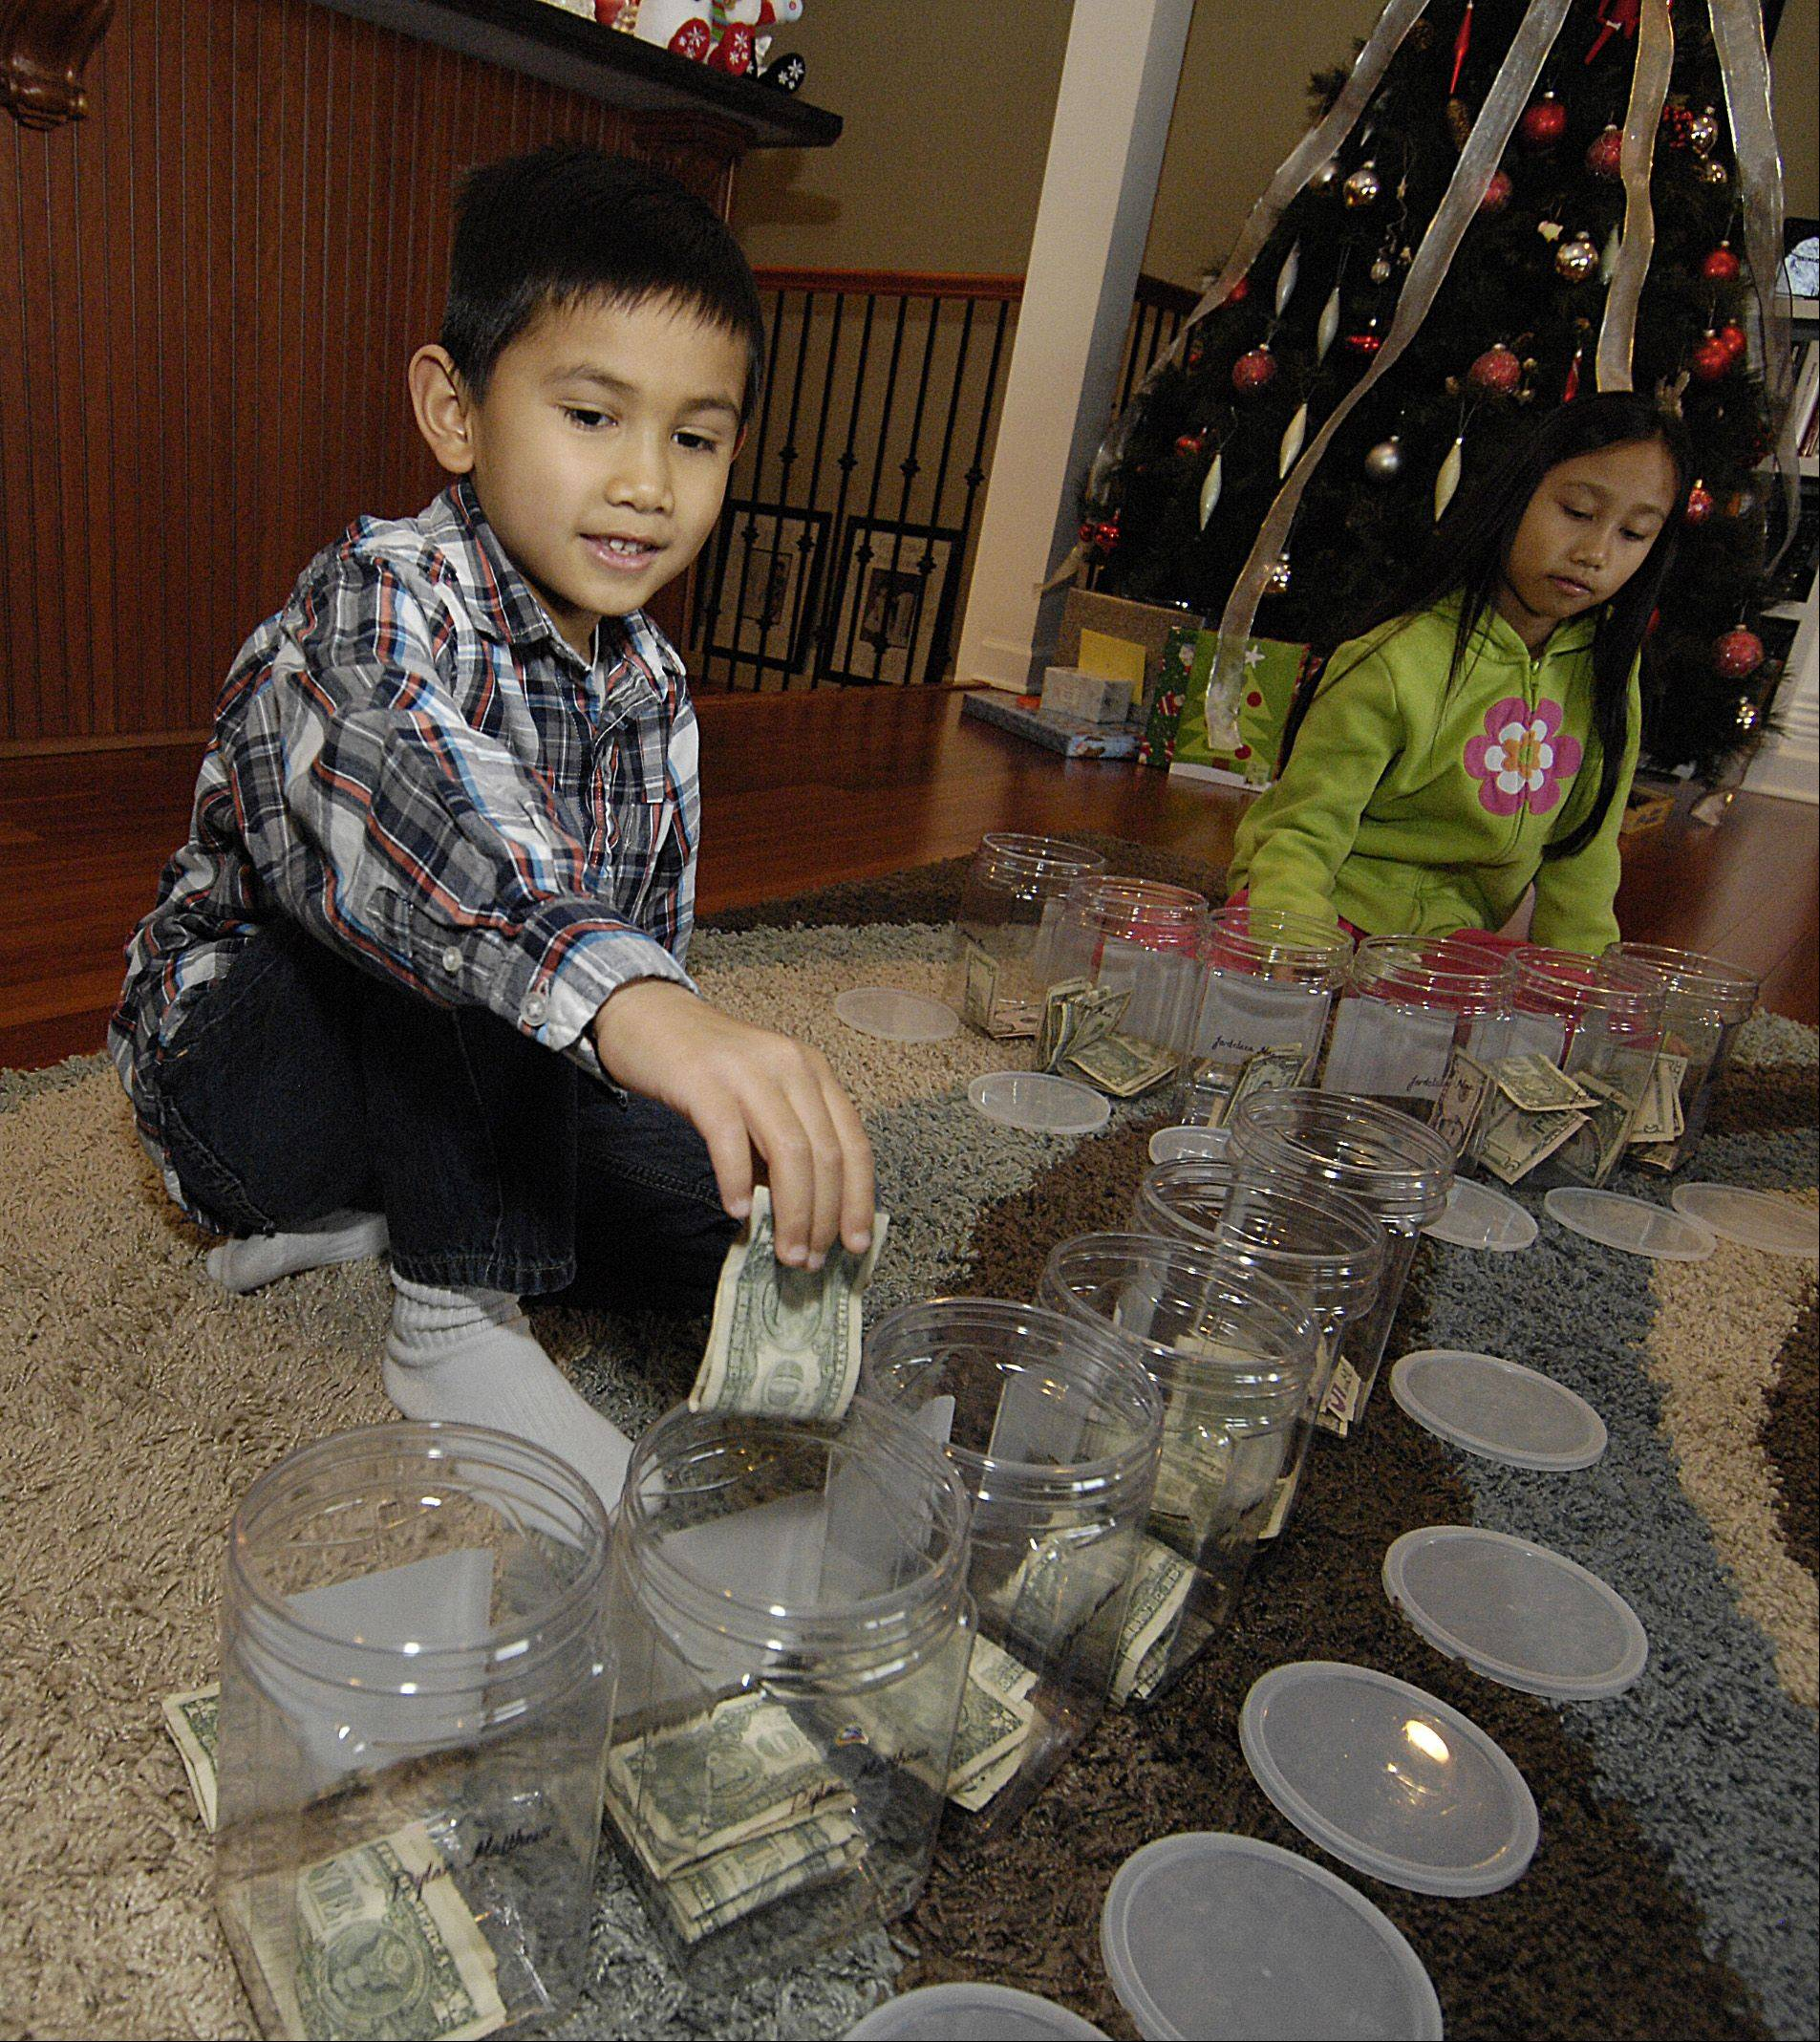 Dylan Javier, 6, and his sister Jardeleza, 9, divide their money among their money jars. The children do extra chores to earn more money.